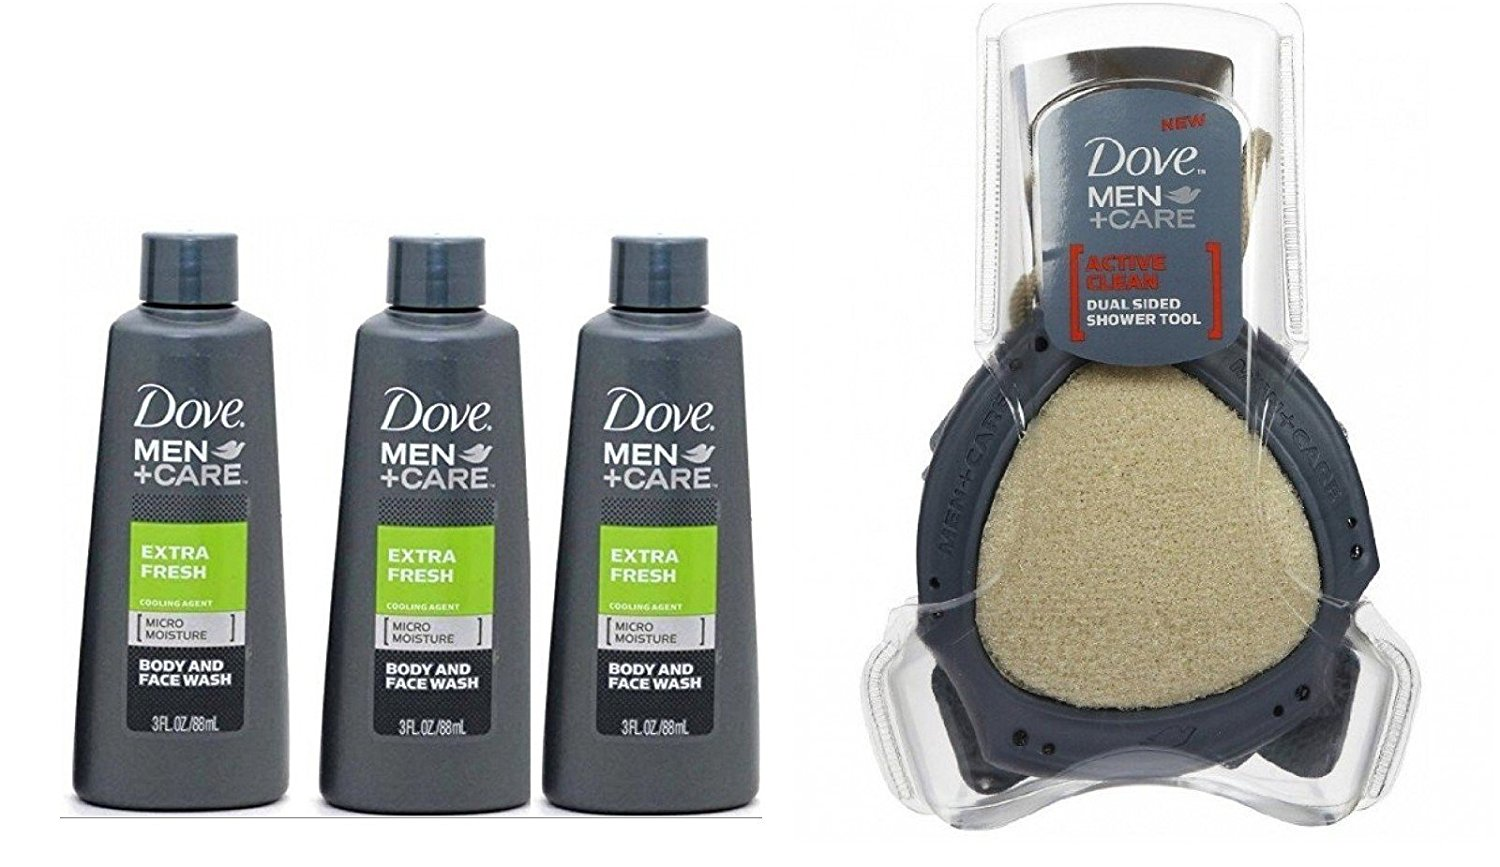 Dove Men + Care Extra Fresh Body and Face Wash 3 Oz Travel Size (Pack of 3) + Dove Men Care Shower Tool